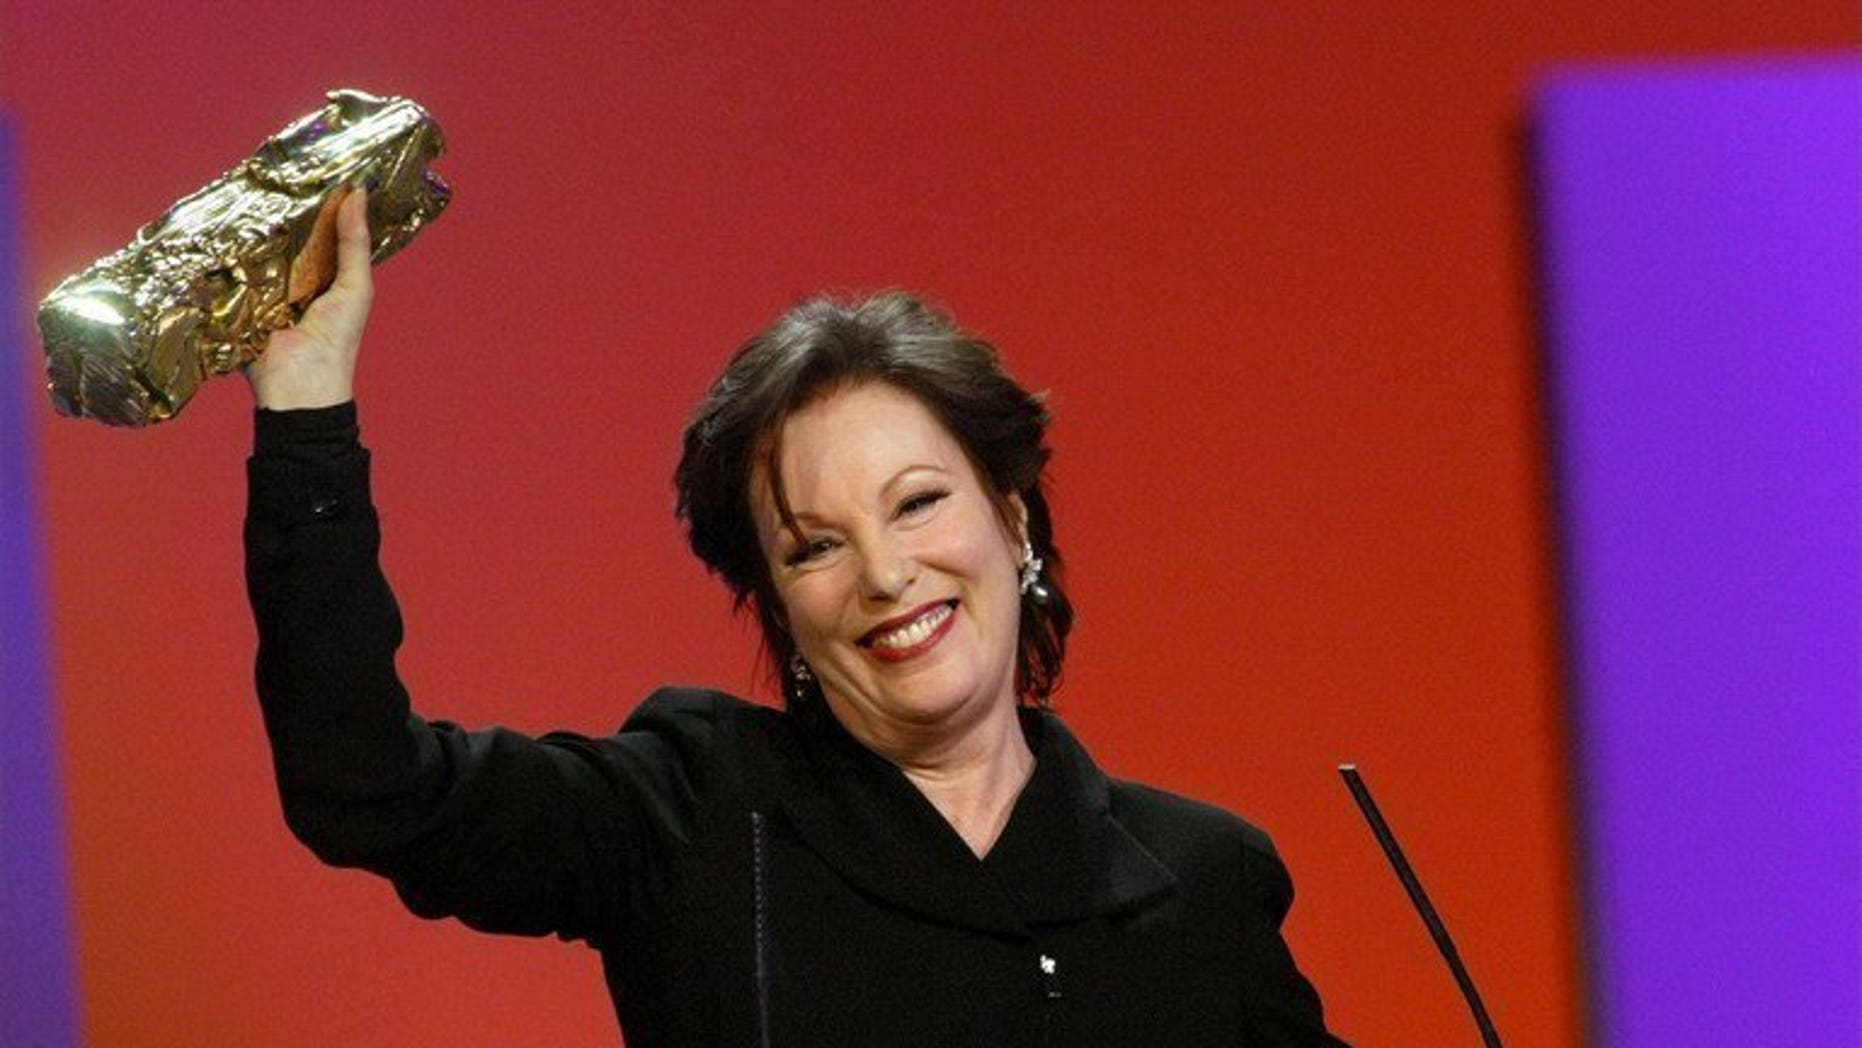 French actress Bernadette Lafont smiles as she receives the Honorary Cesar during the 28th Cesar Awards ceremony in Paris, February 22, 2003. Lafont died on July 25, 2013 in Nimes, southern France.